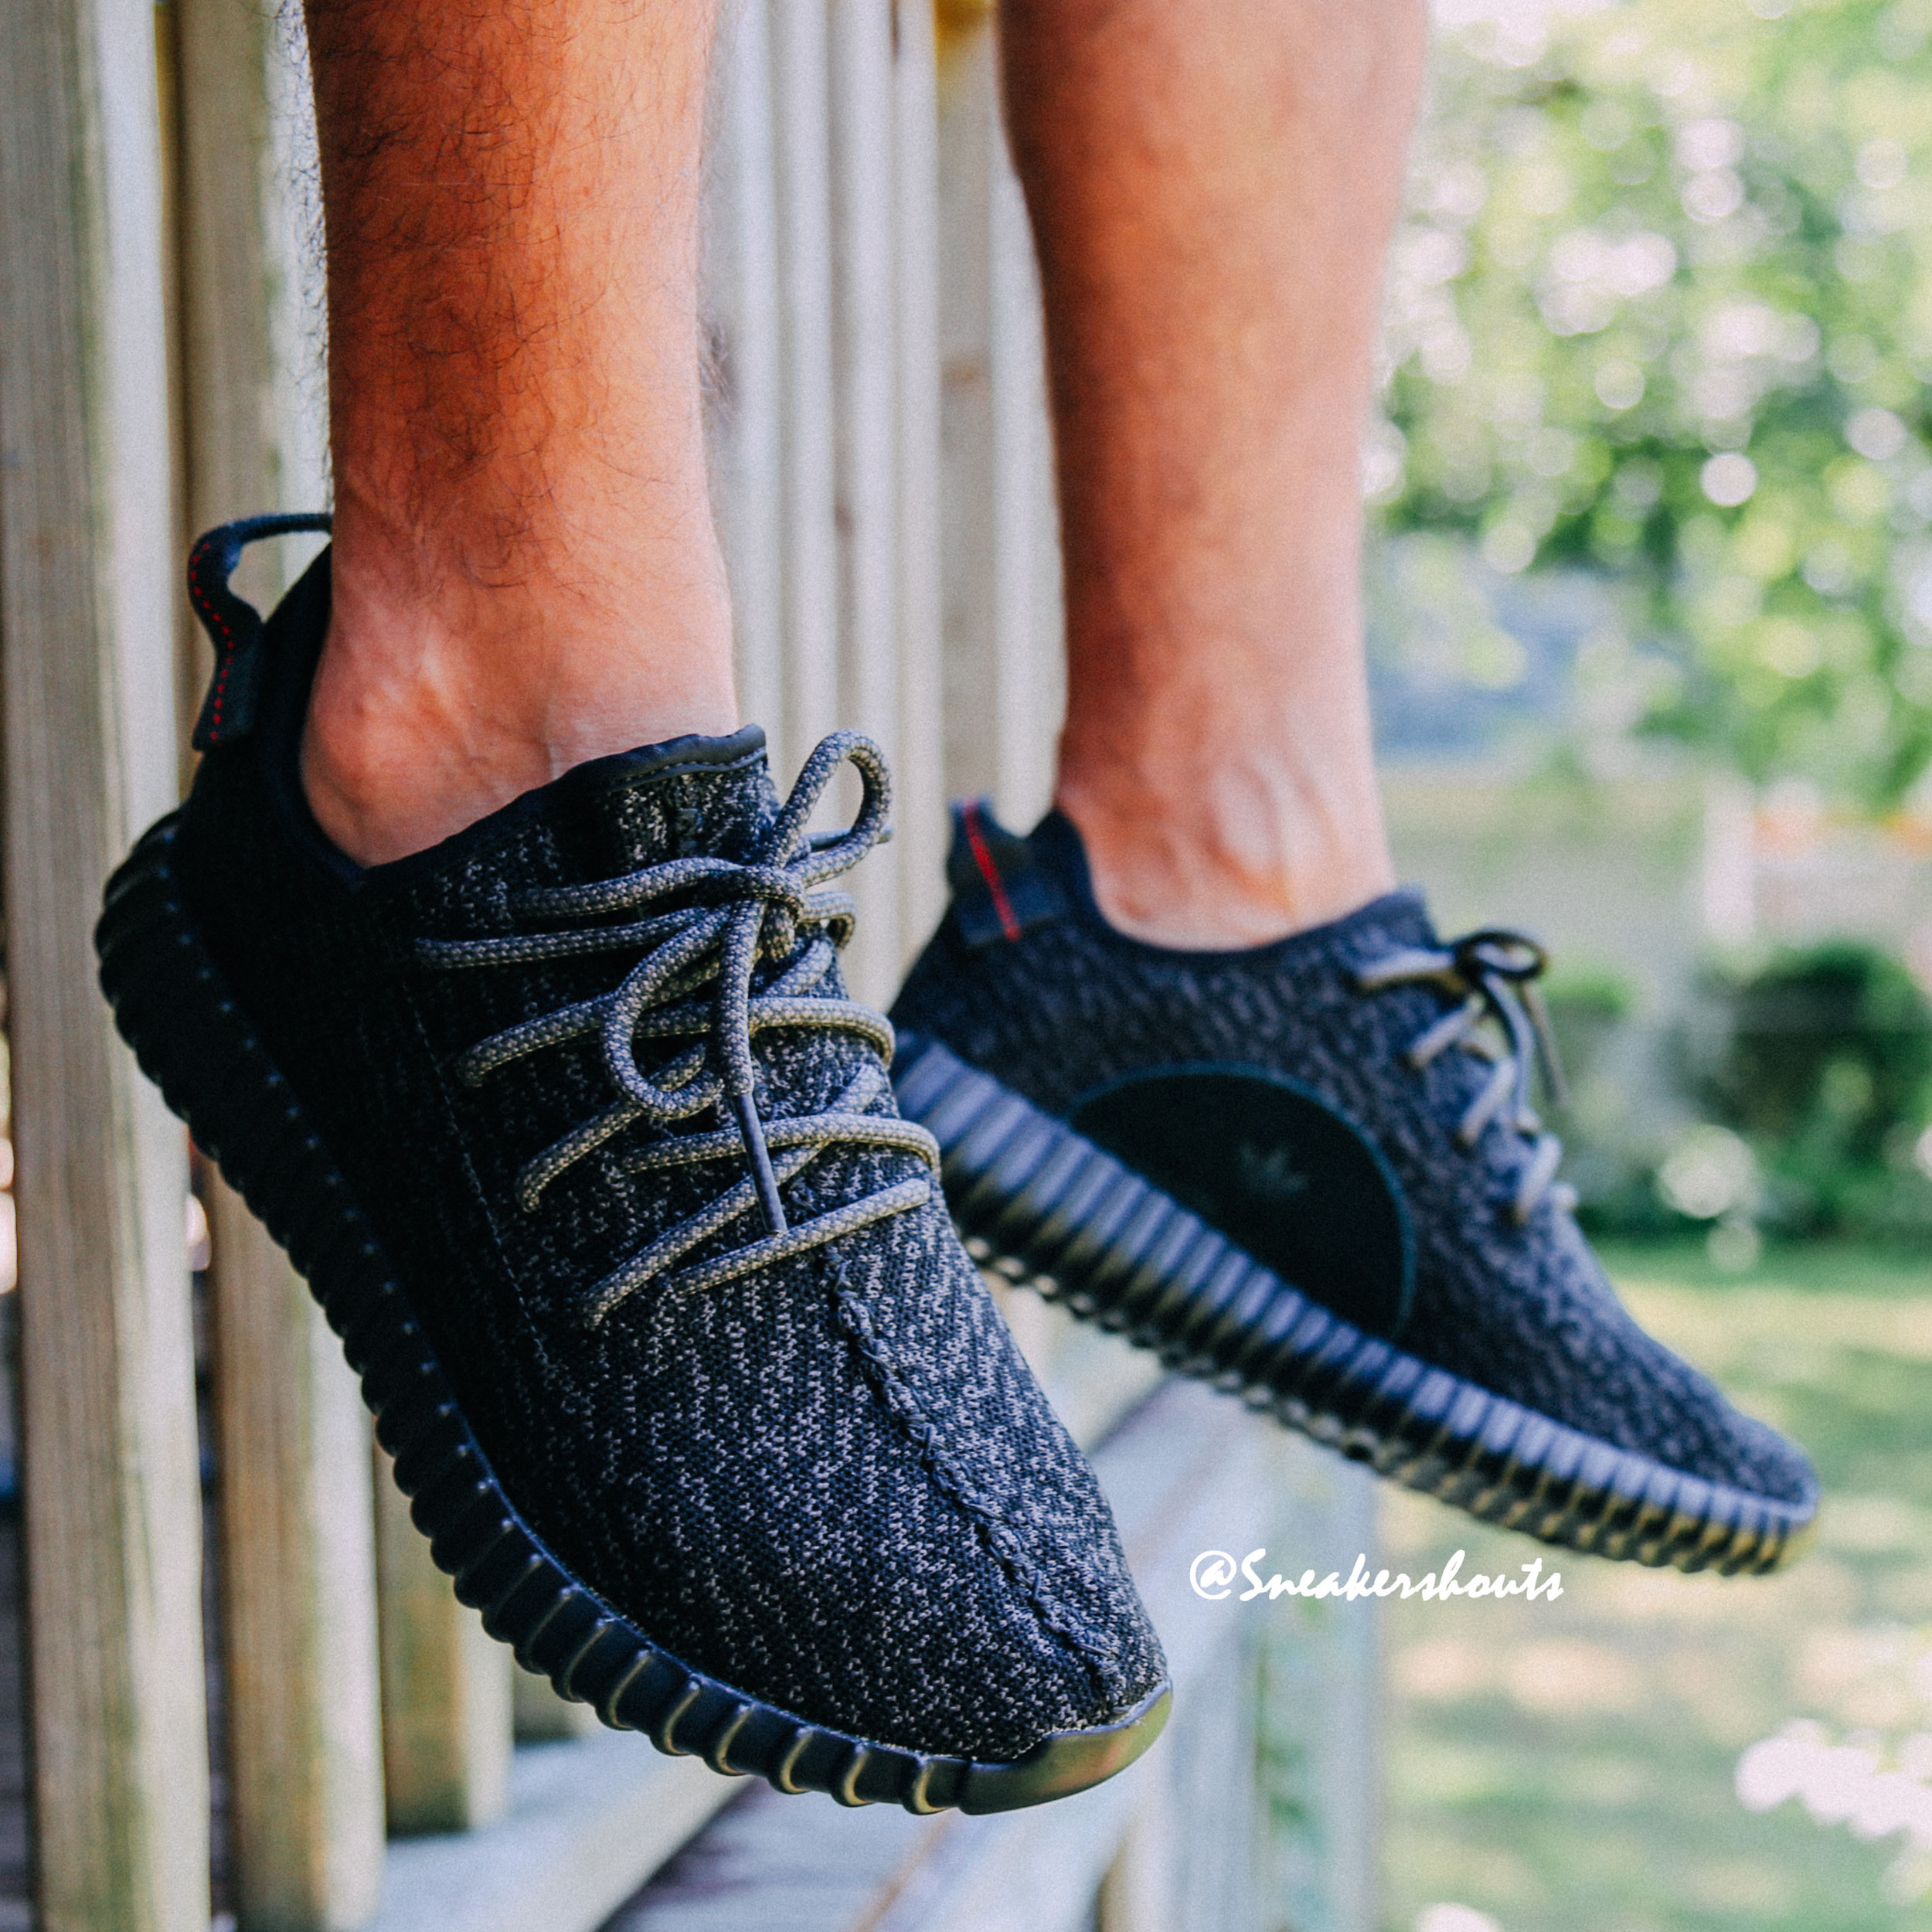 Adidas-Yeezy-350-Boost-Low-Black-5.jpg